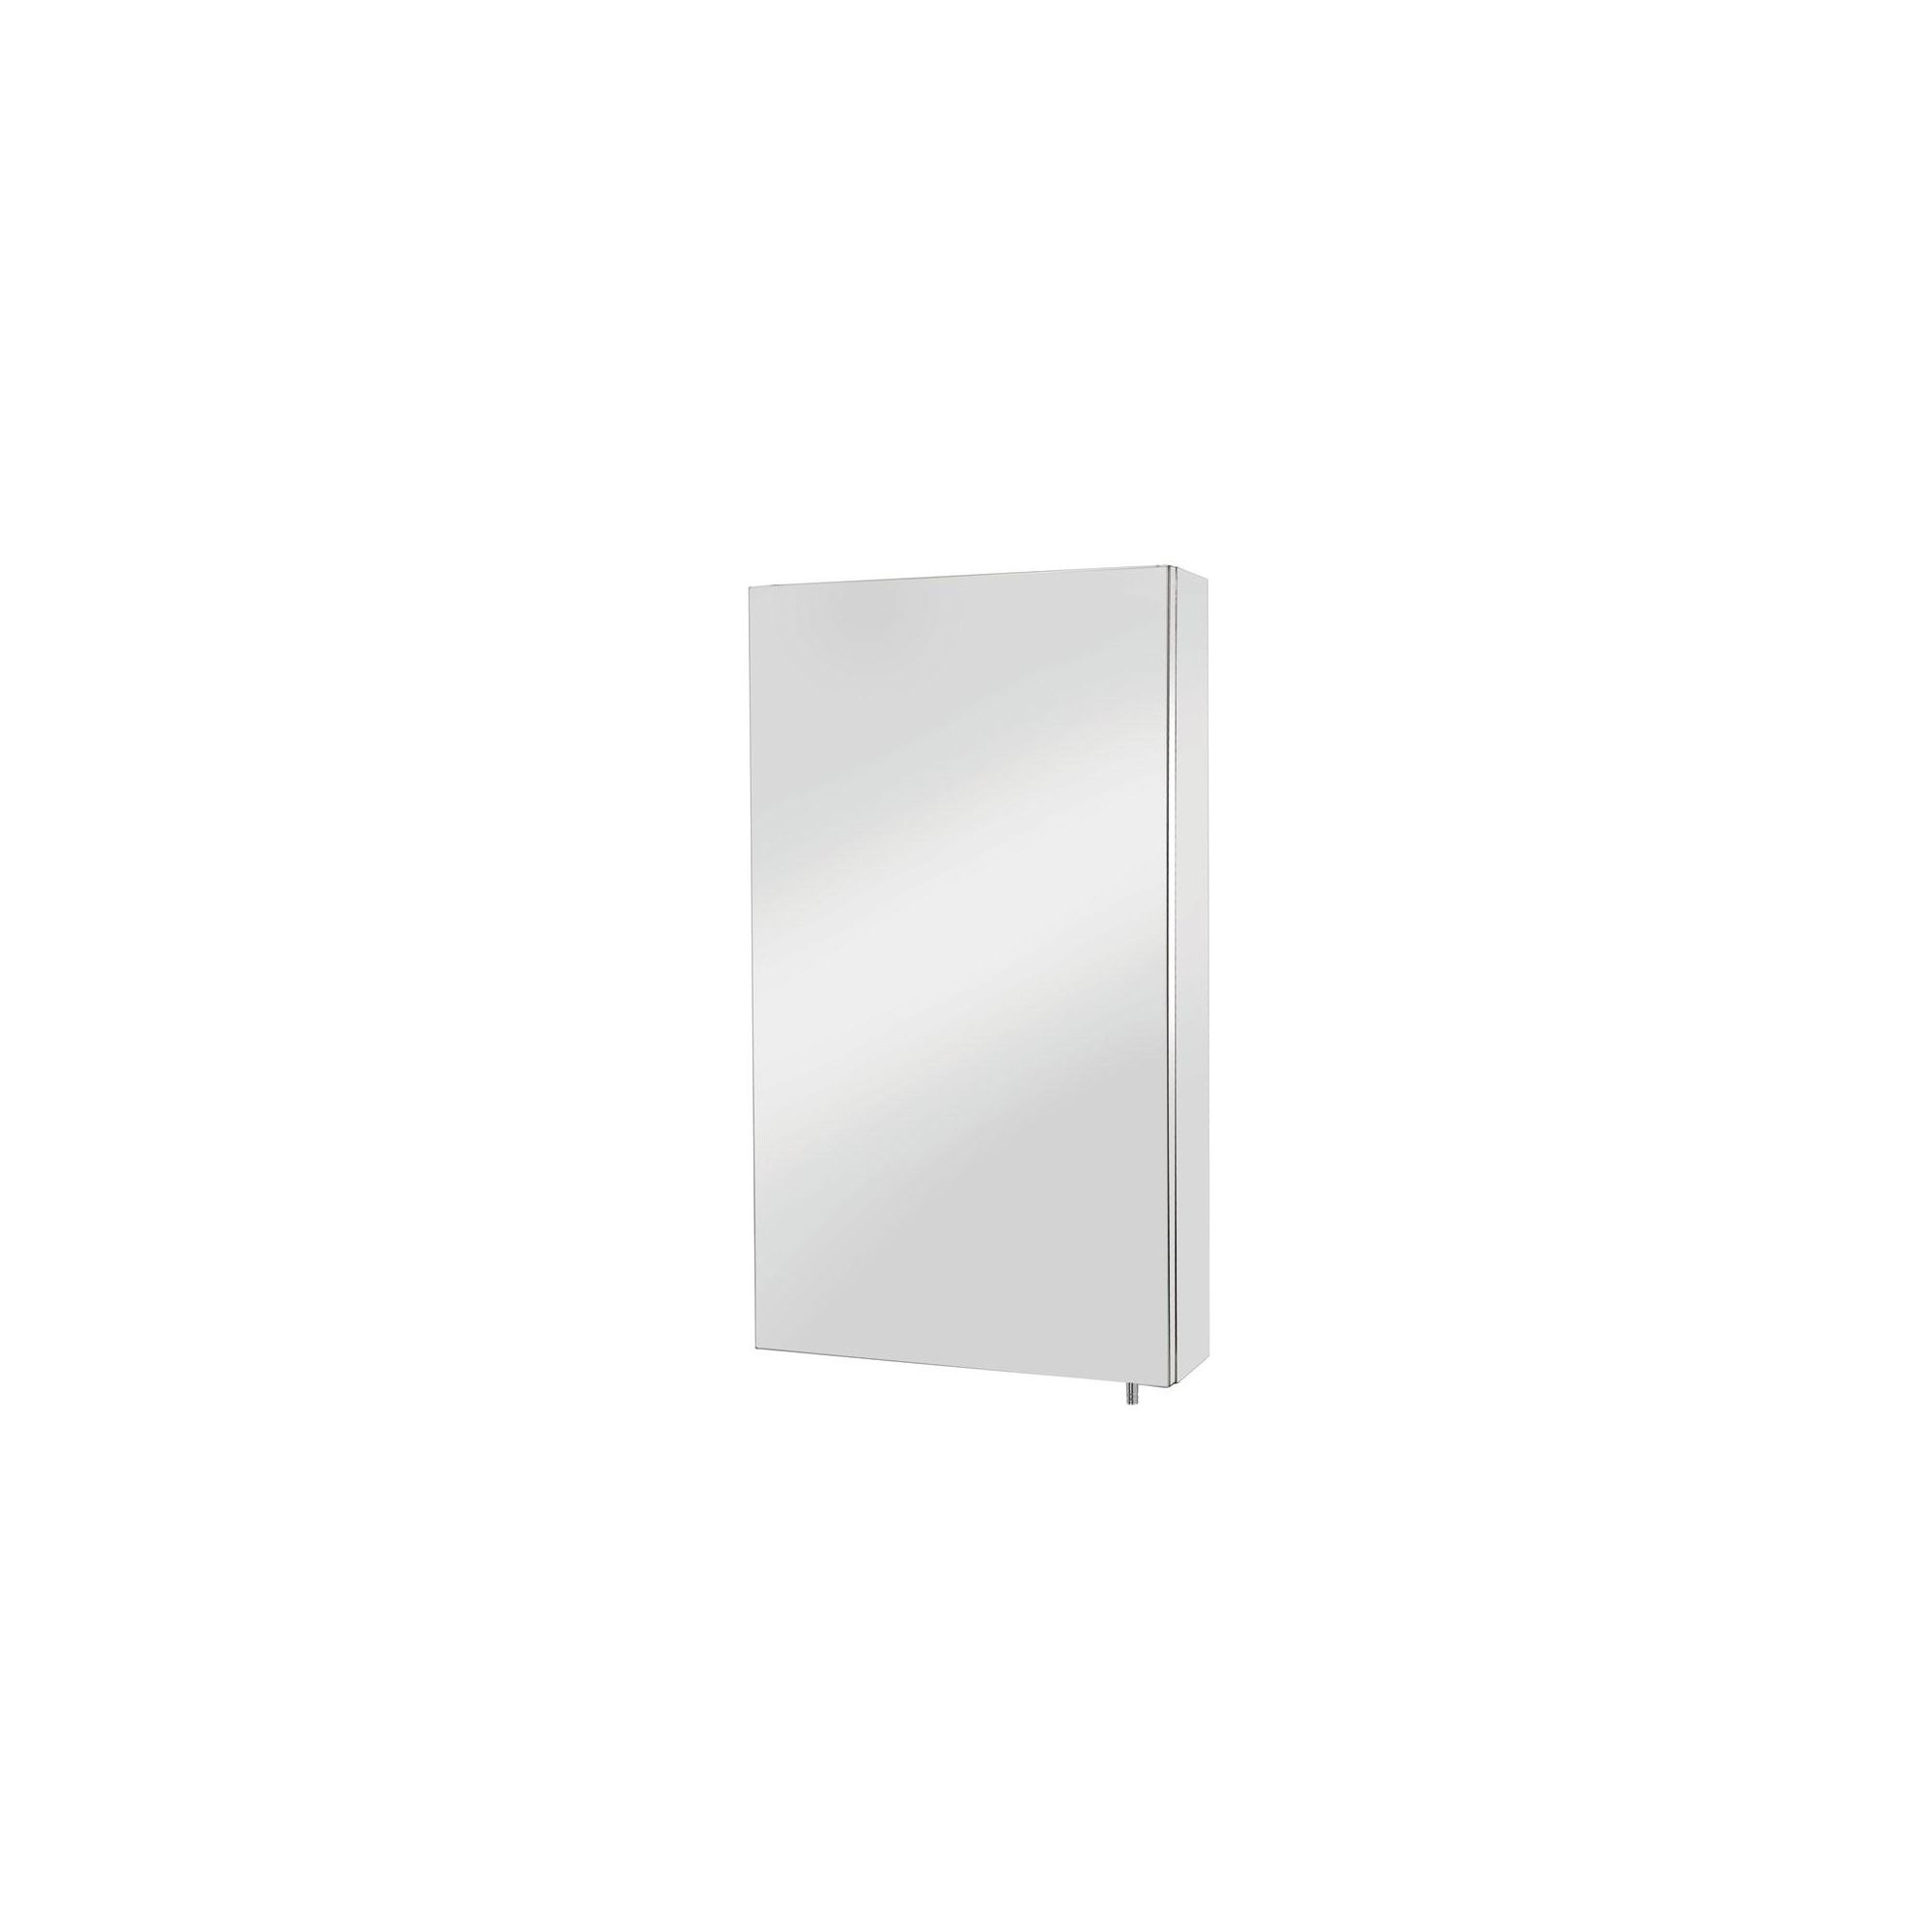 Croydex Colorado Large Single Door Stainless Steel Bathroom Cabinet